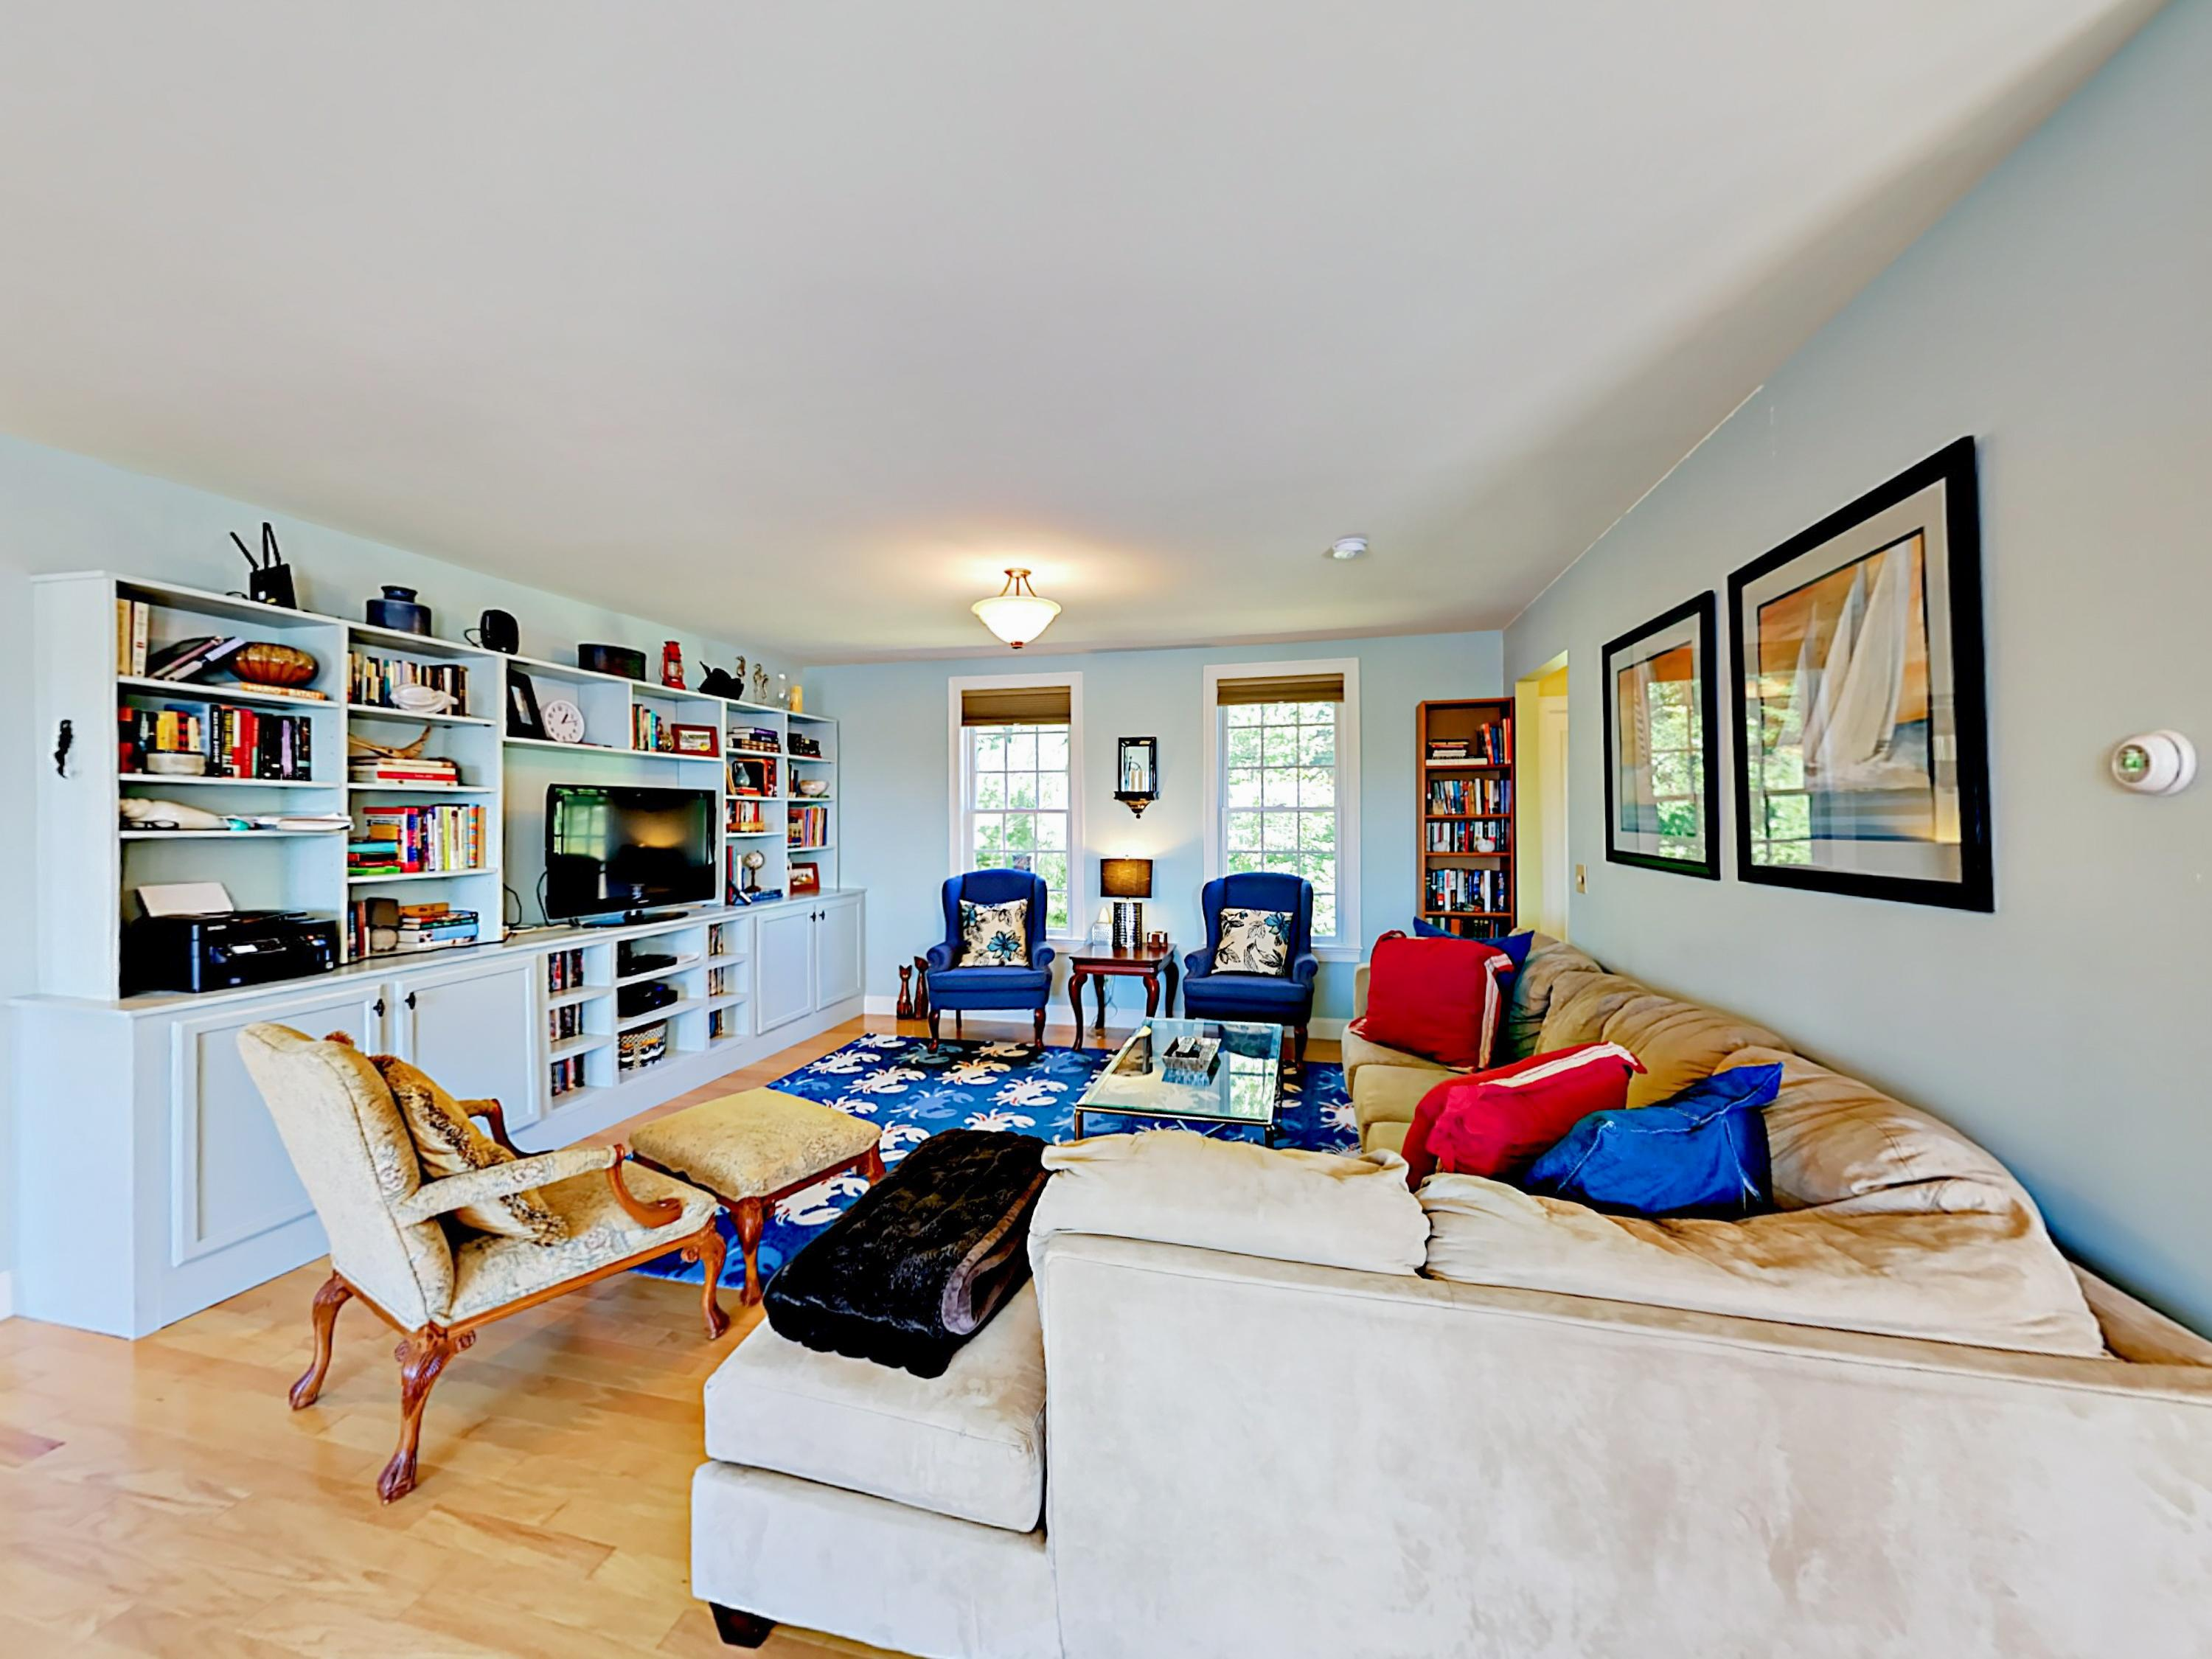 A sectional sofa and sitting chairs furnish the main sitting area. Professionally managed by TurnKey Vacation Rentals.